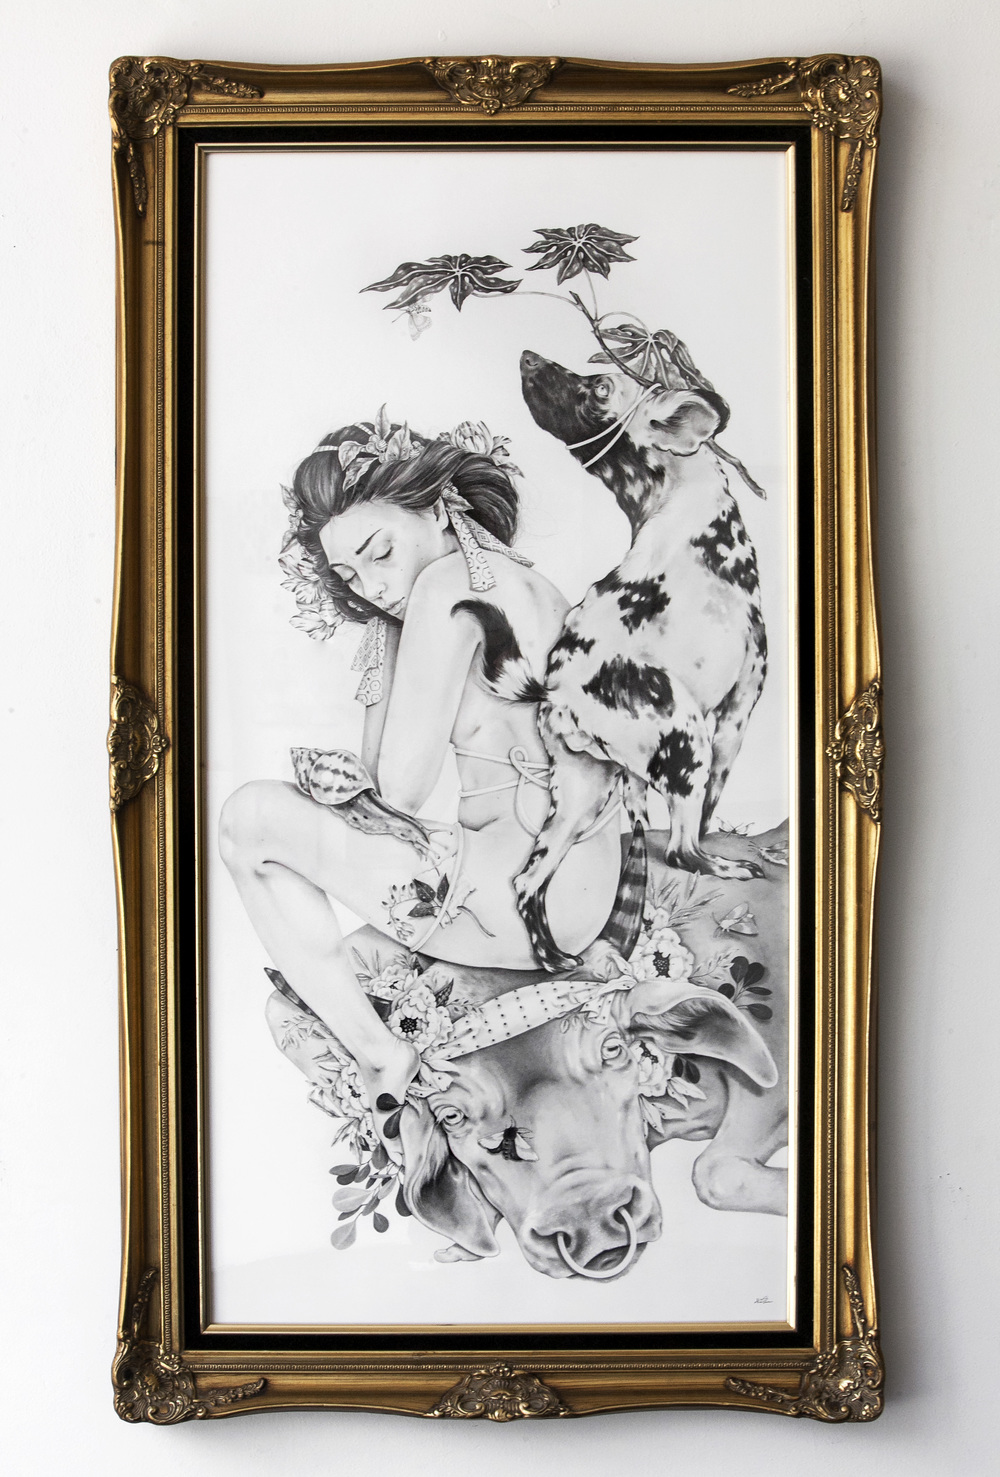 "Begotten of the Night by Nicomi Nix Turner Graphite on Paper. 24""x48"". 2016"